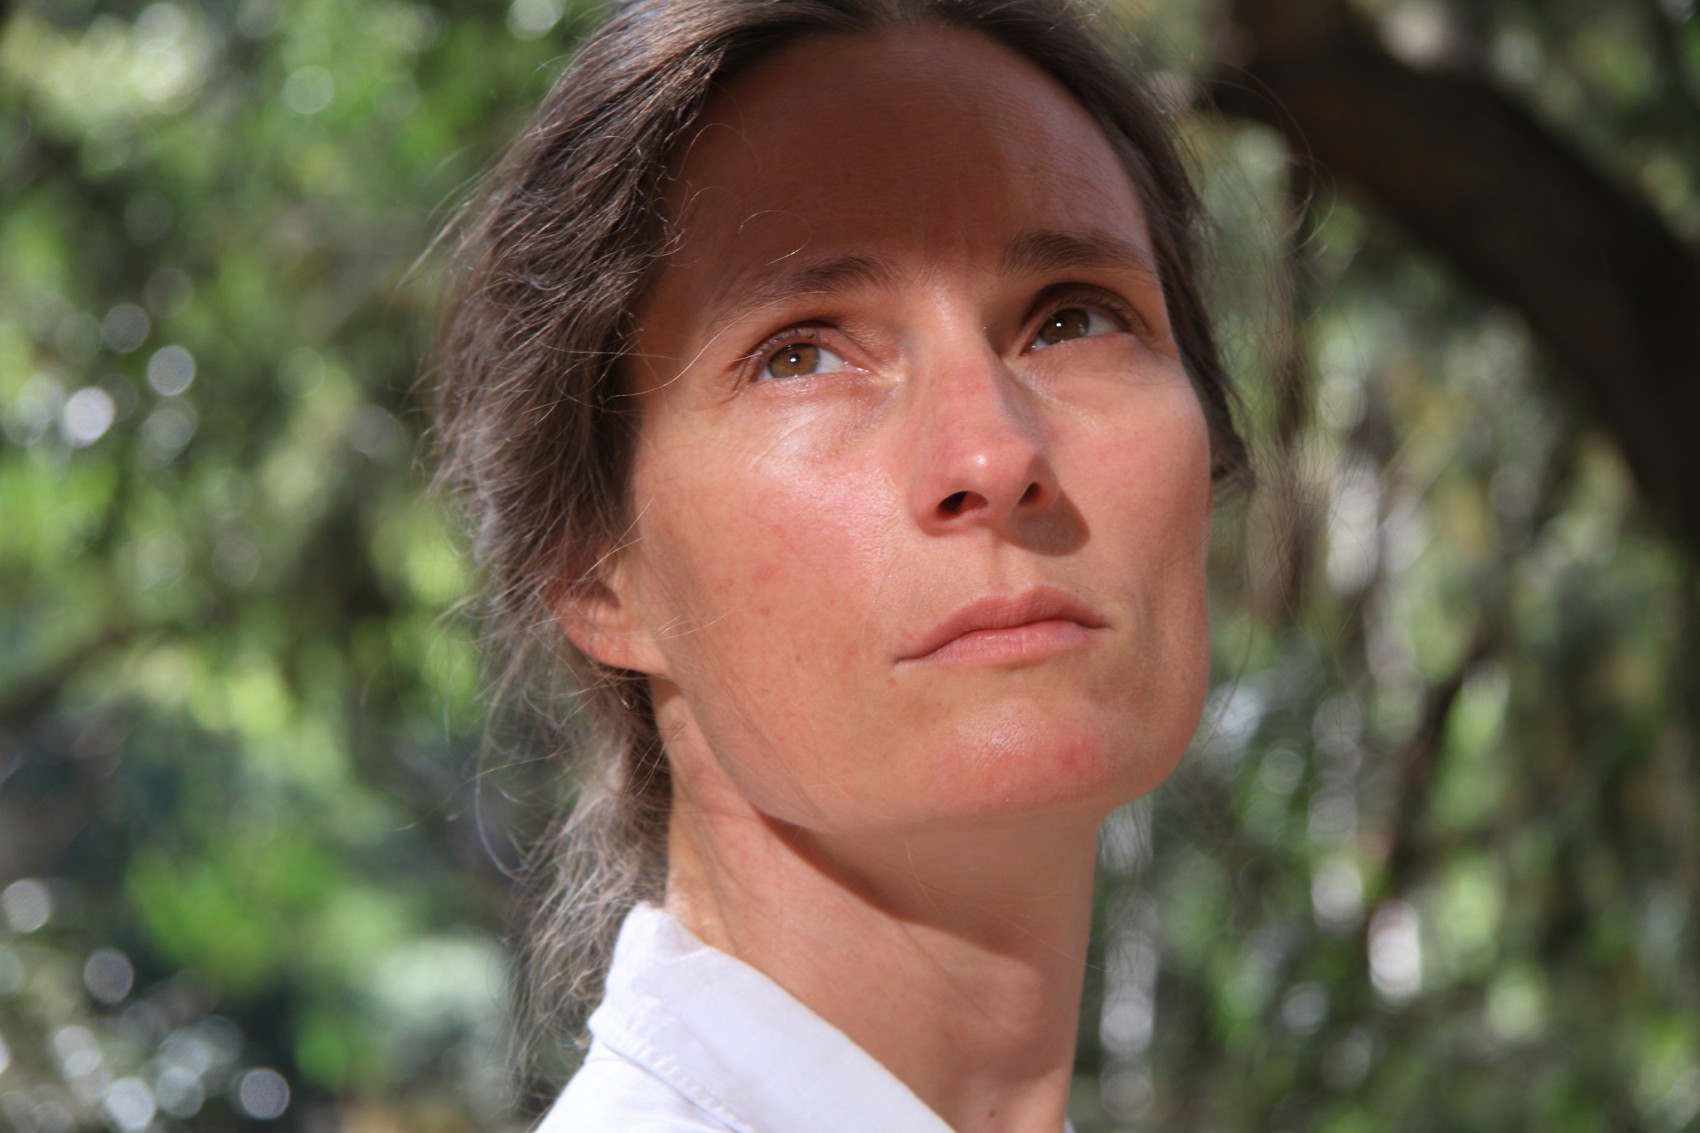 Close shot of woman's face outside in dappled light with tree foliage behind her